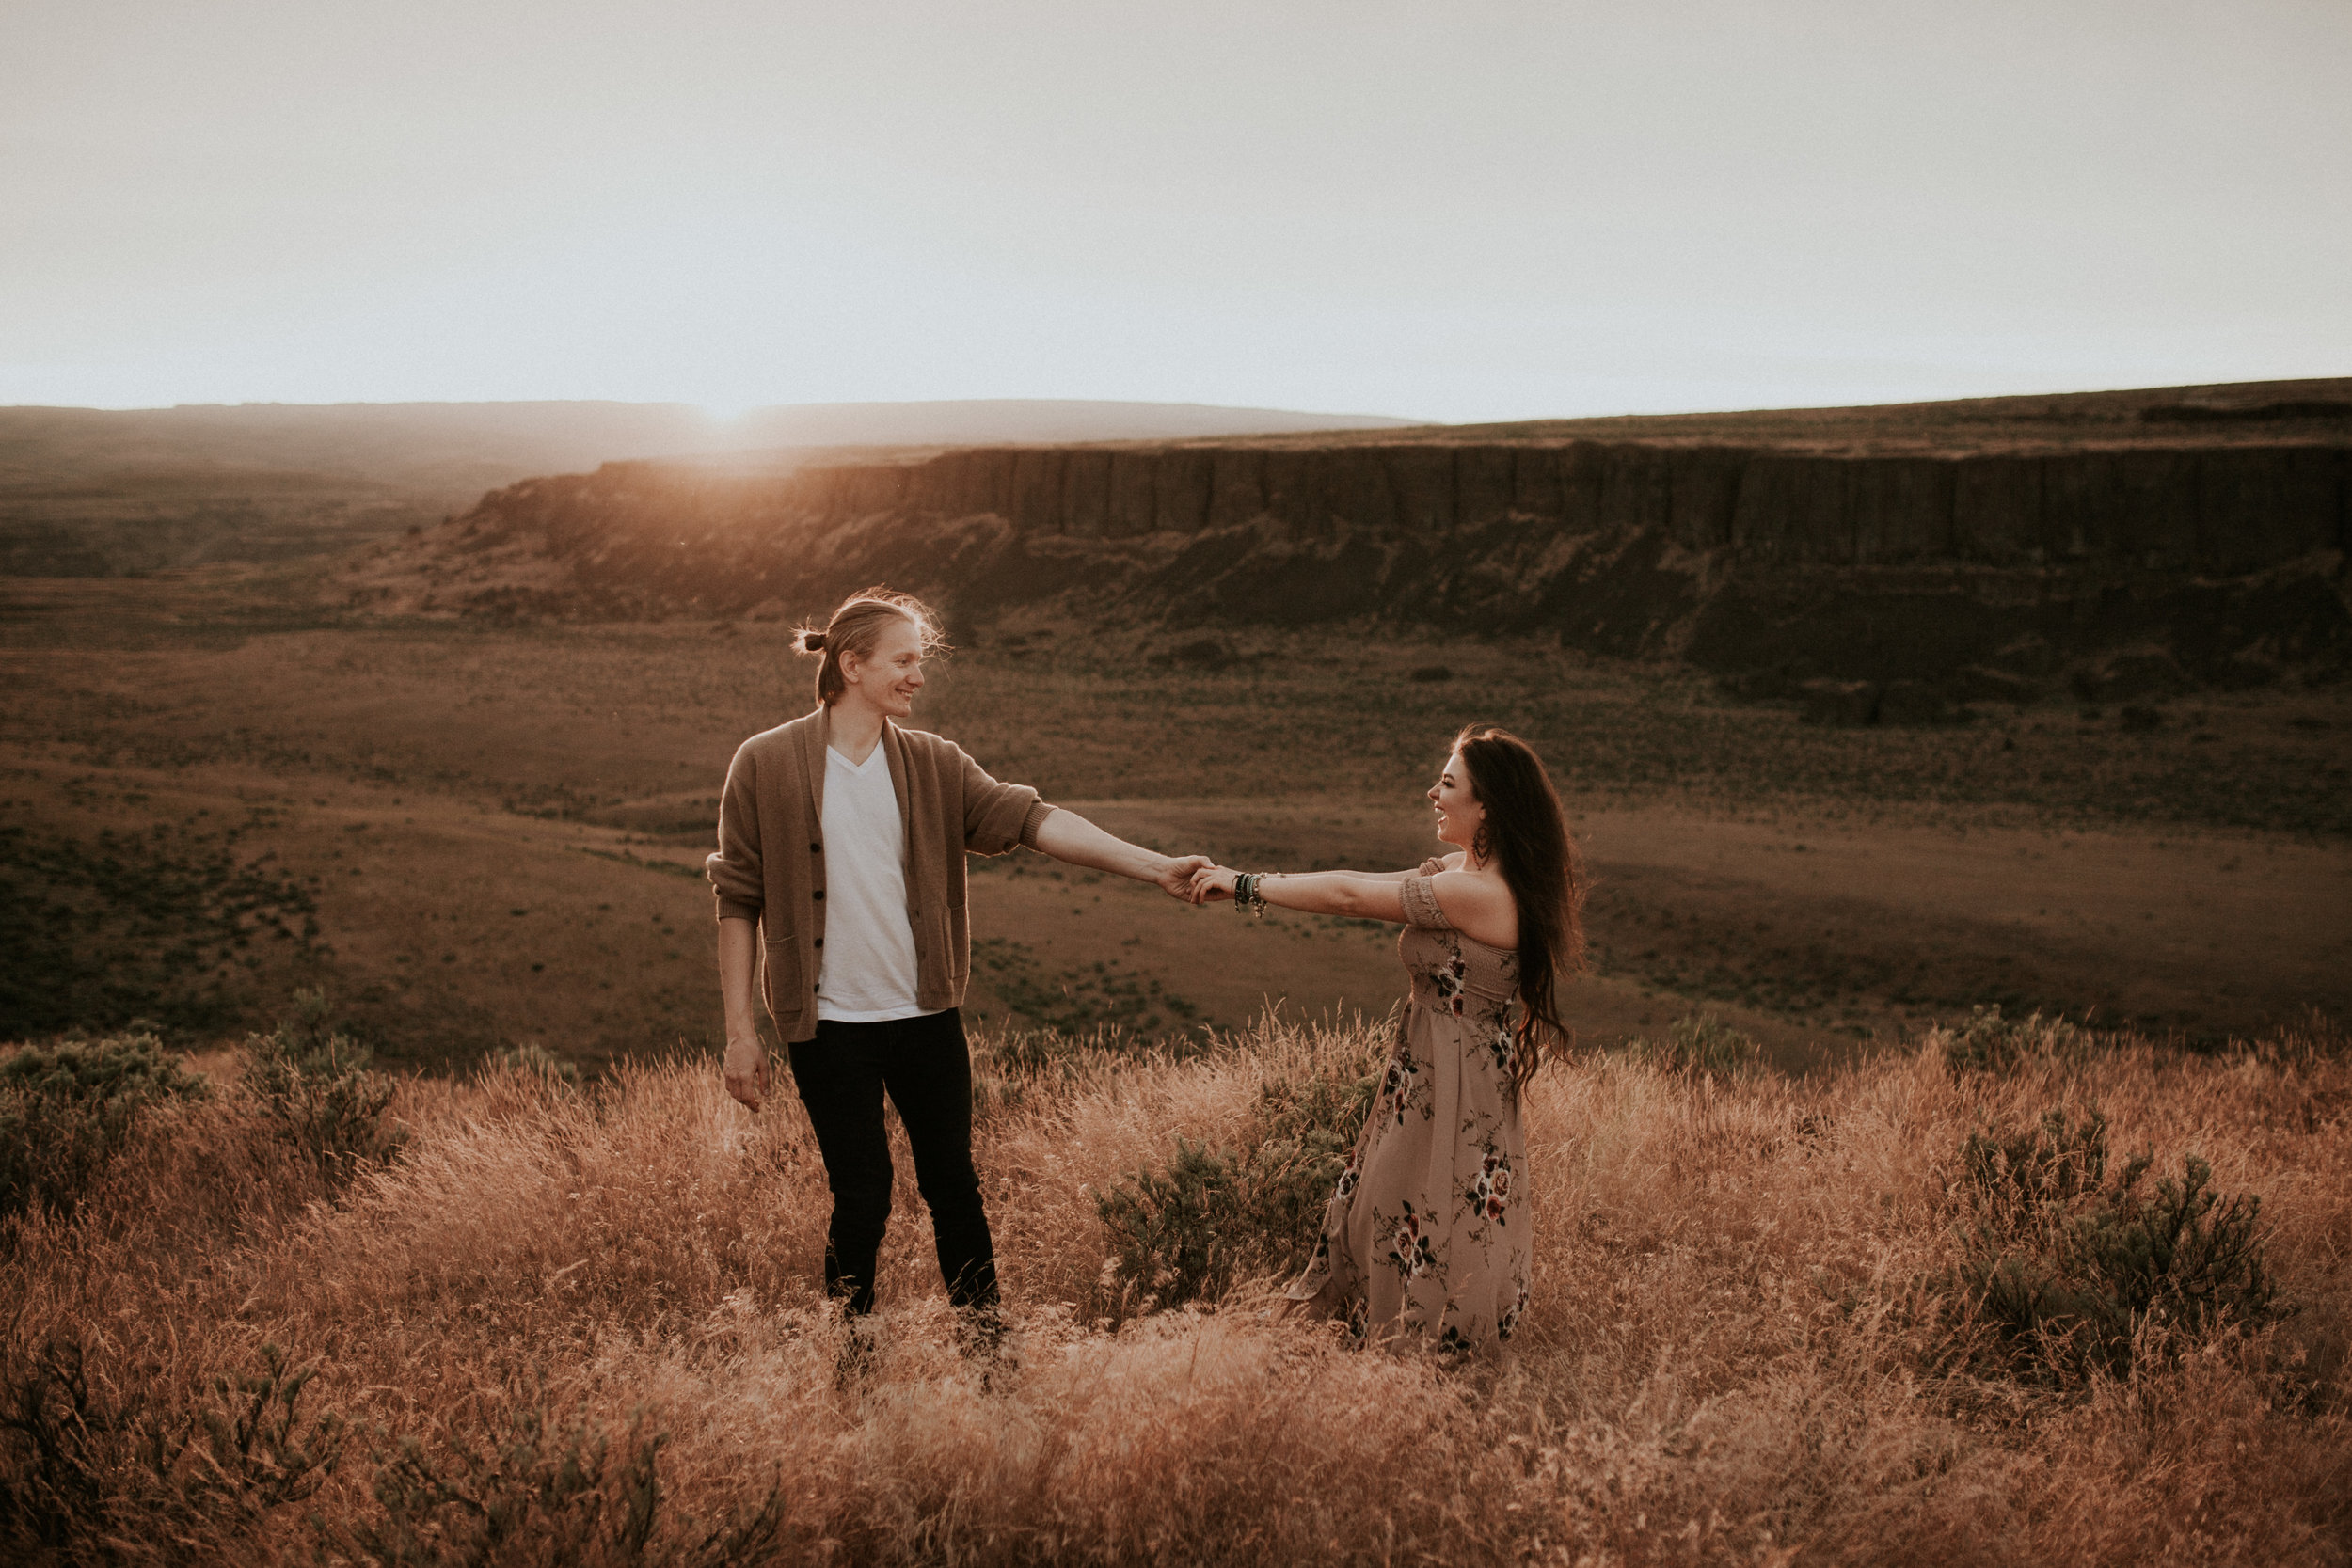 Vow renewal photography at vantage washington